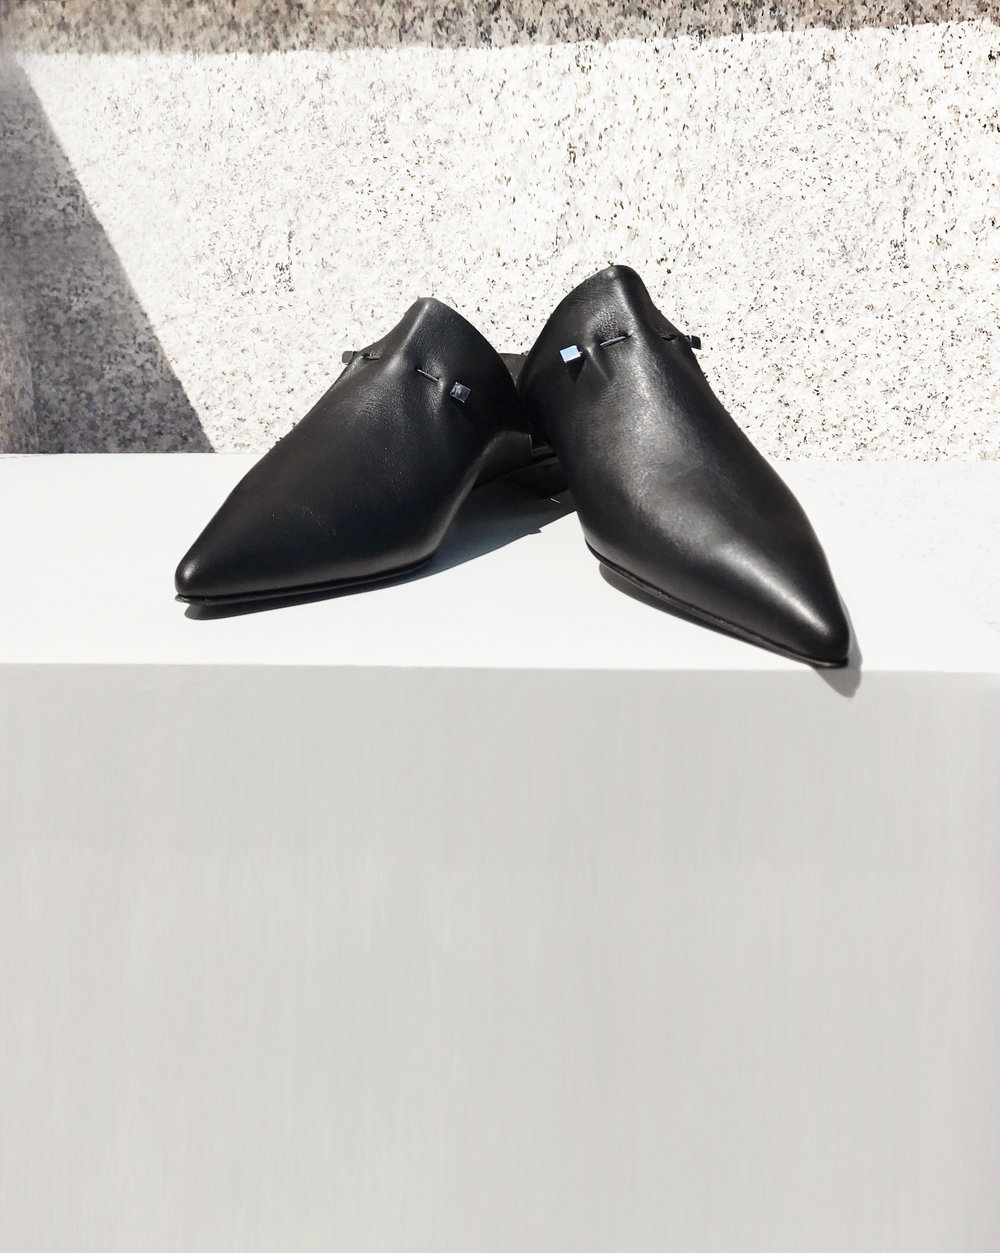 Pinned Sorento Slides - Black leather pointy-toe slipper with signature hardware for timeless chic